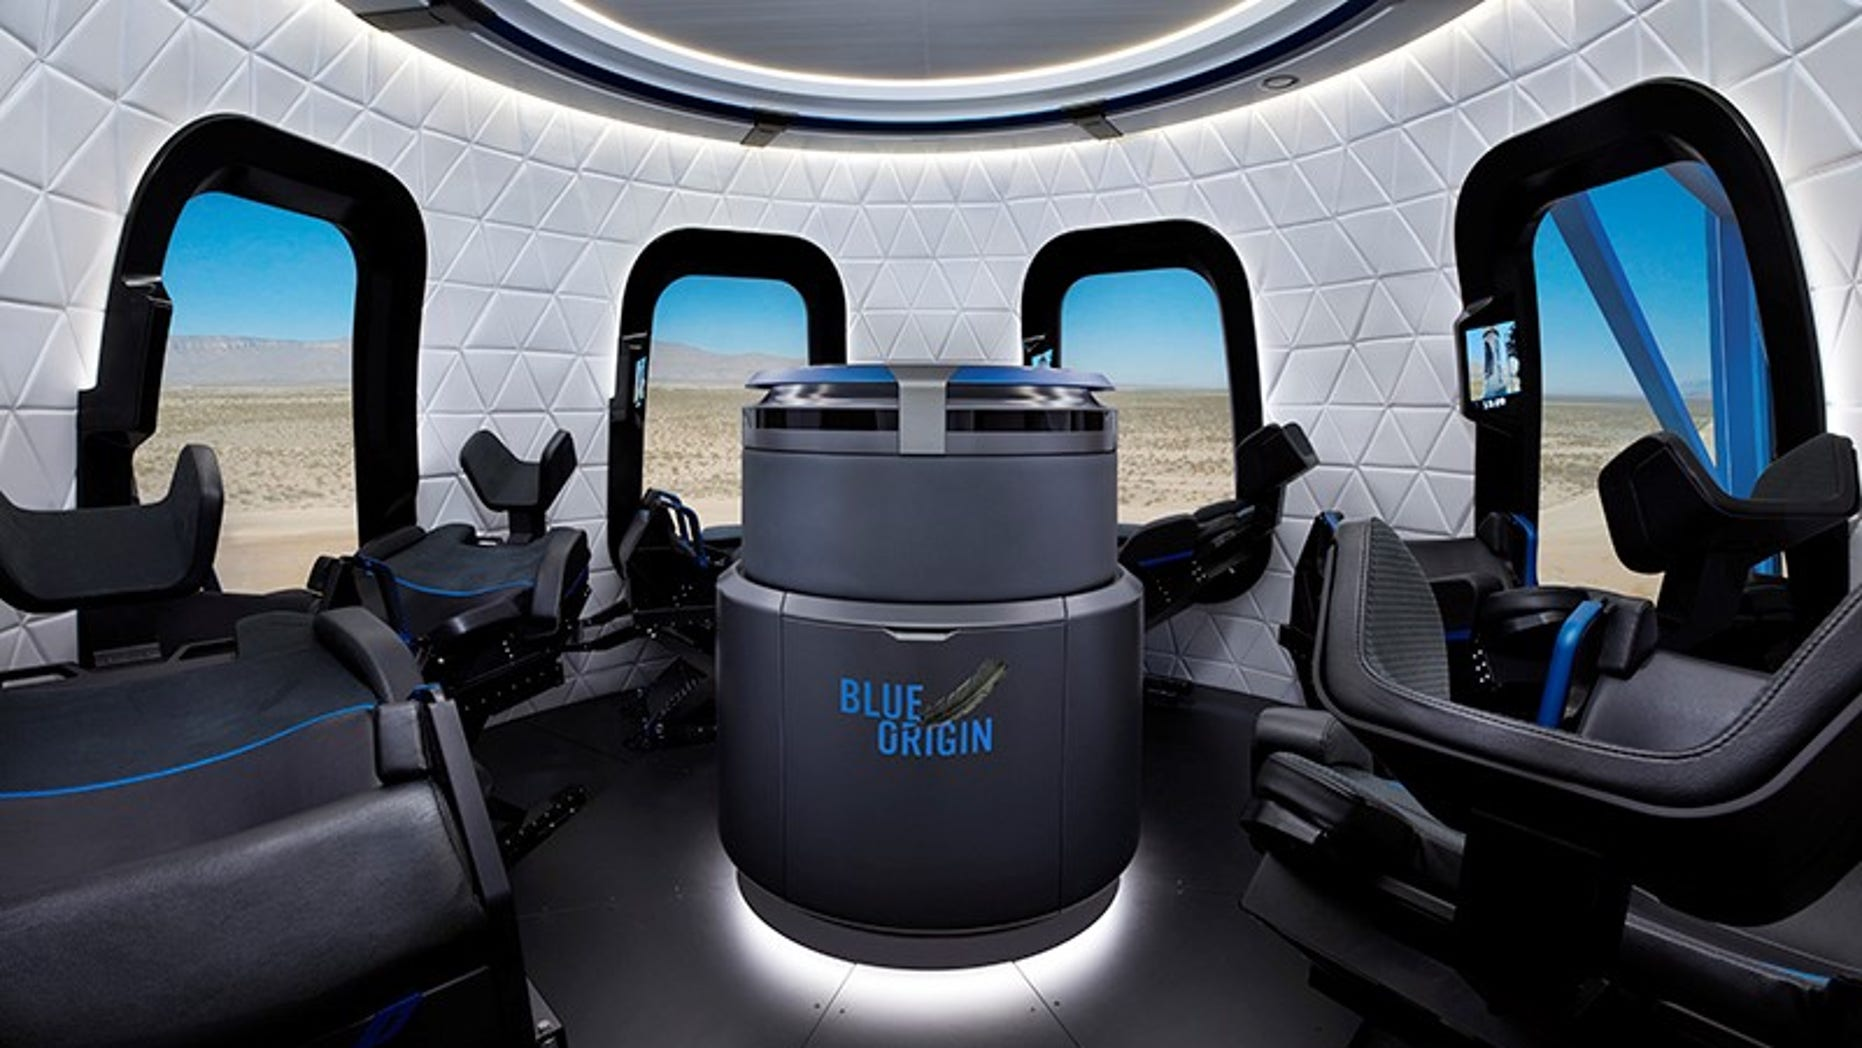 A visualization of the interior of Blue Origin's New Shepard vehicle, which the company plans to use to ferry tourists on short trips to space.